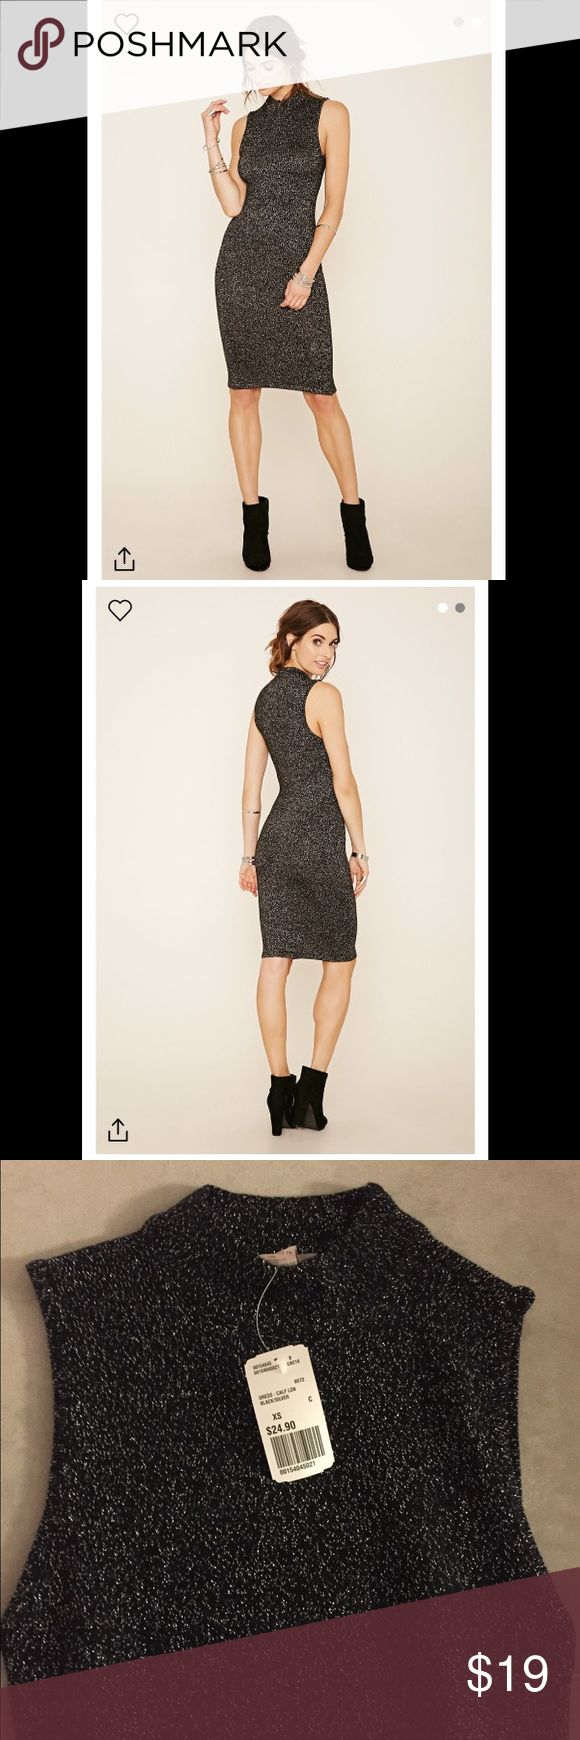 Metallic Bodycon Dress Sleeveless Dress Crafted From Metallic Knit In A Bodycon Silhouette With A Mock Neck. New with tags. Forever 21 Dresses Midi